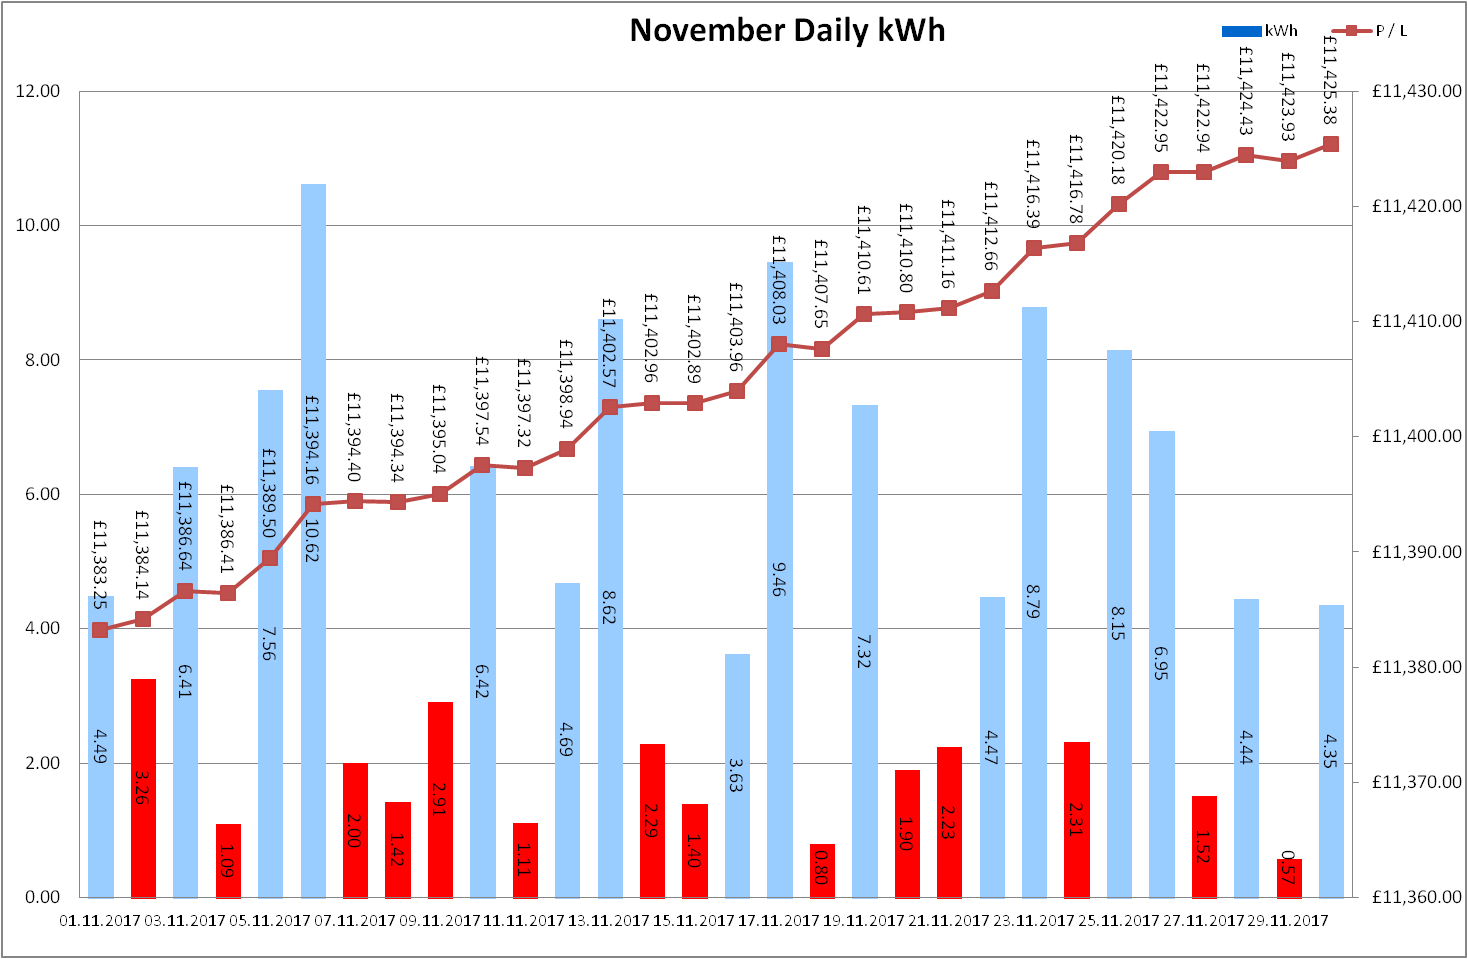 Total Output for November 2017